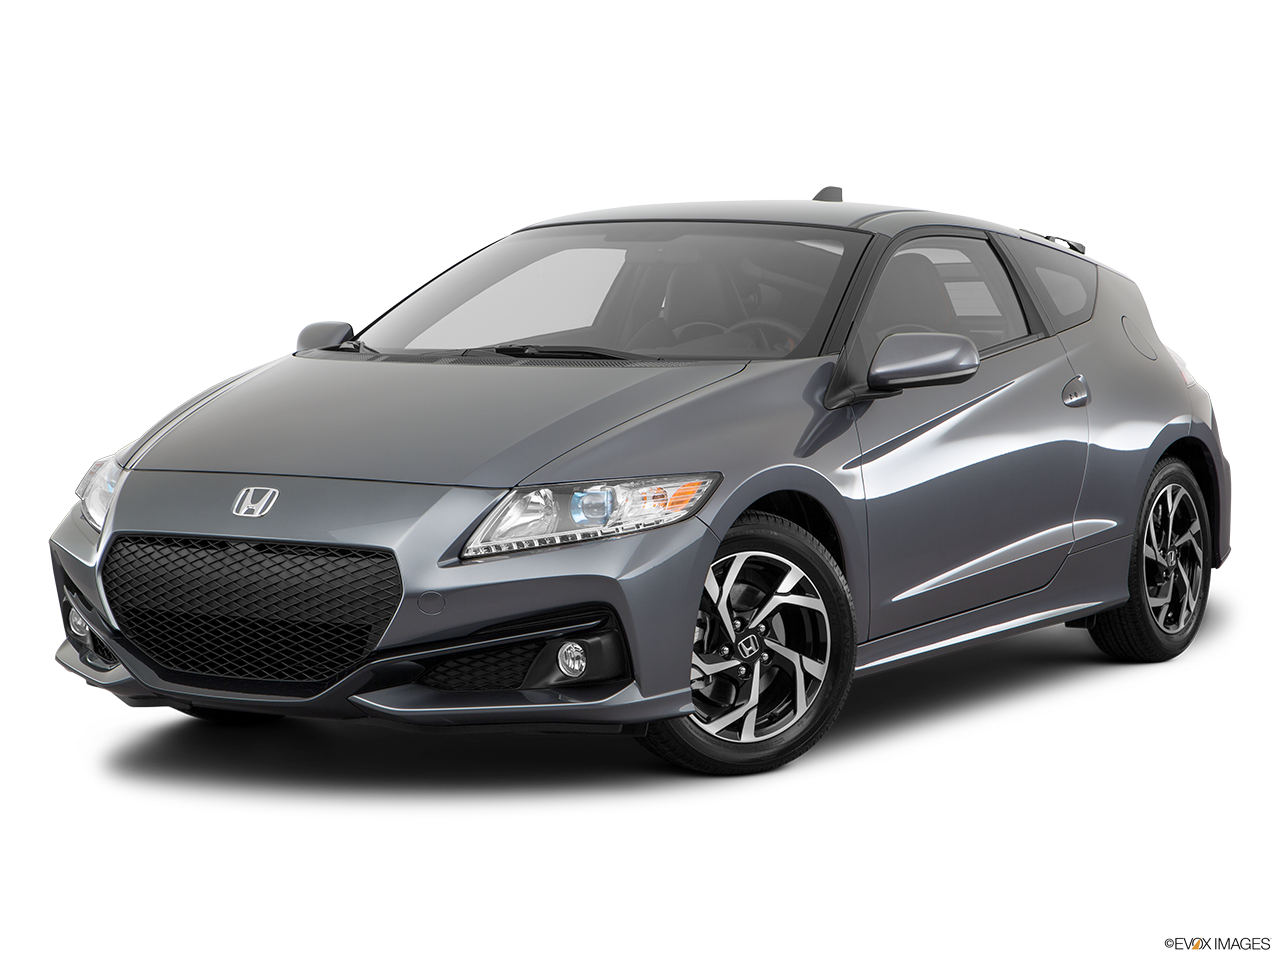 Test Drive A 2016 Honda CR-Z at Galpin Honda in Los Angeles